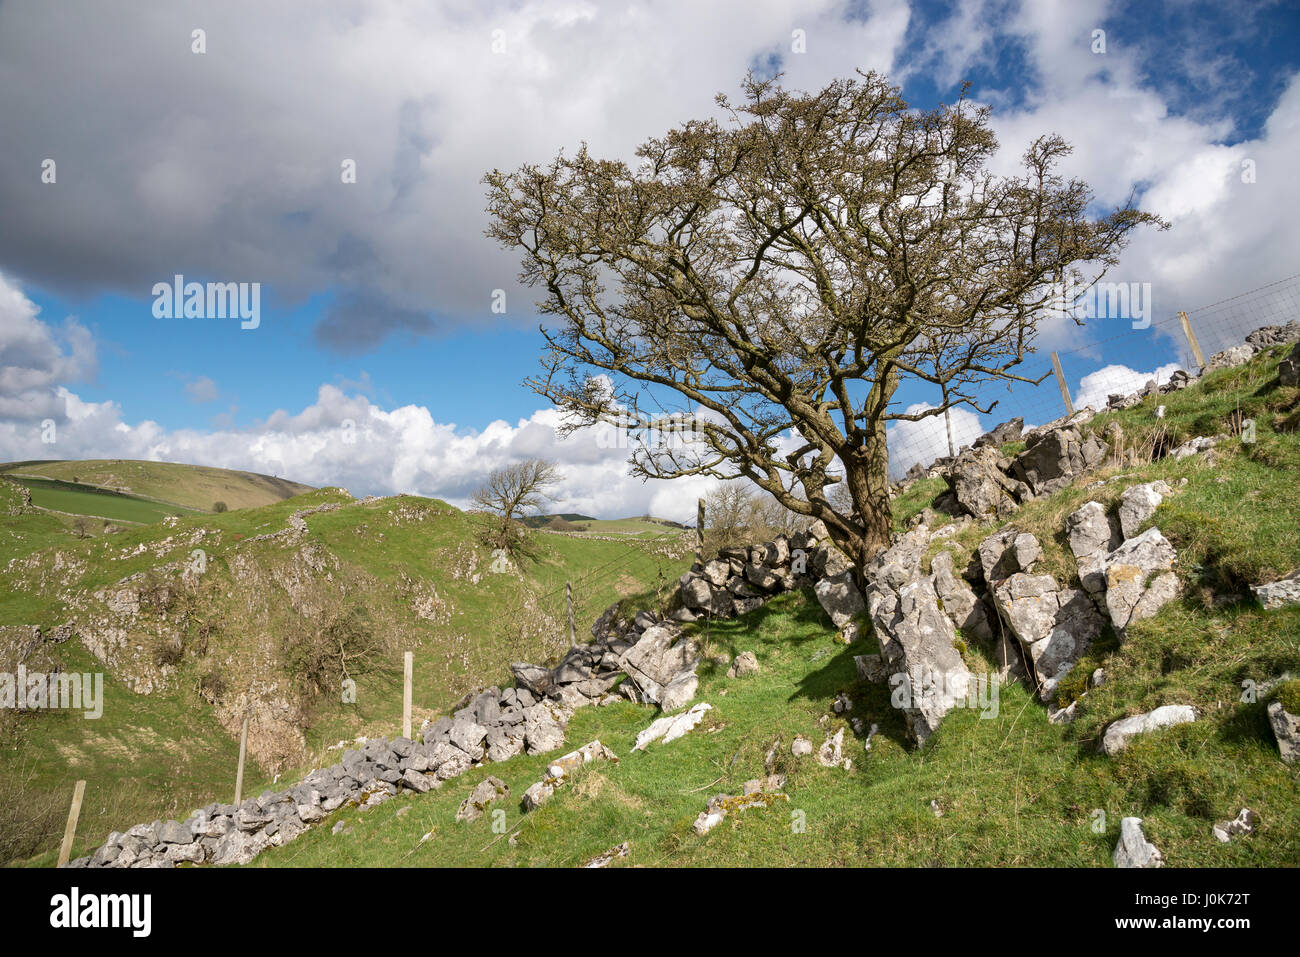 Gnarled old Hawthorn tree clinging to a rocky hillside in the White Peak area of the Peak District near Buxton, - Stock Image